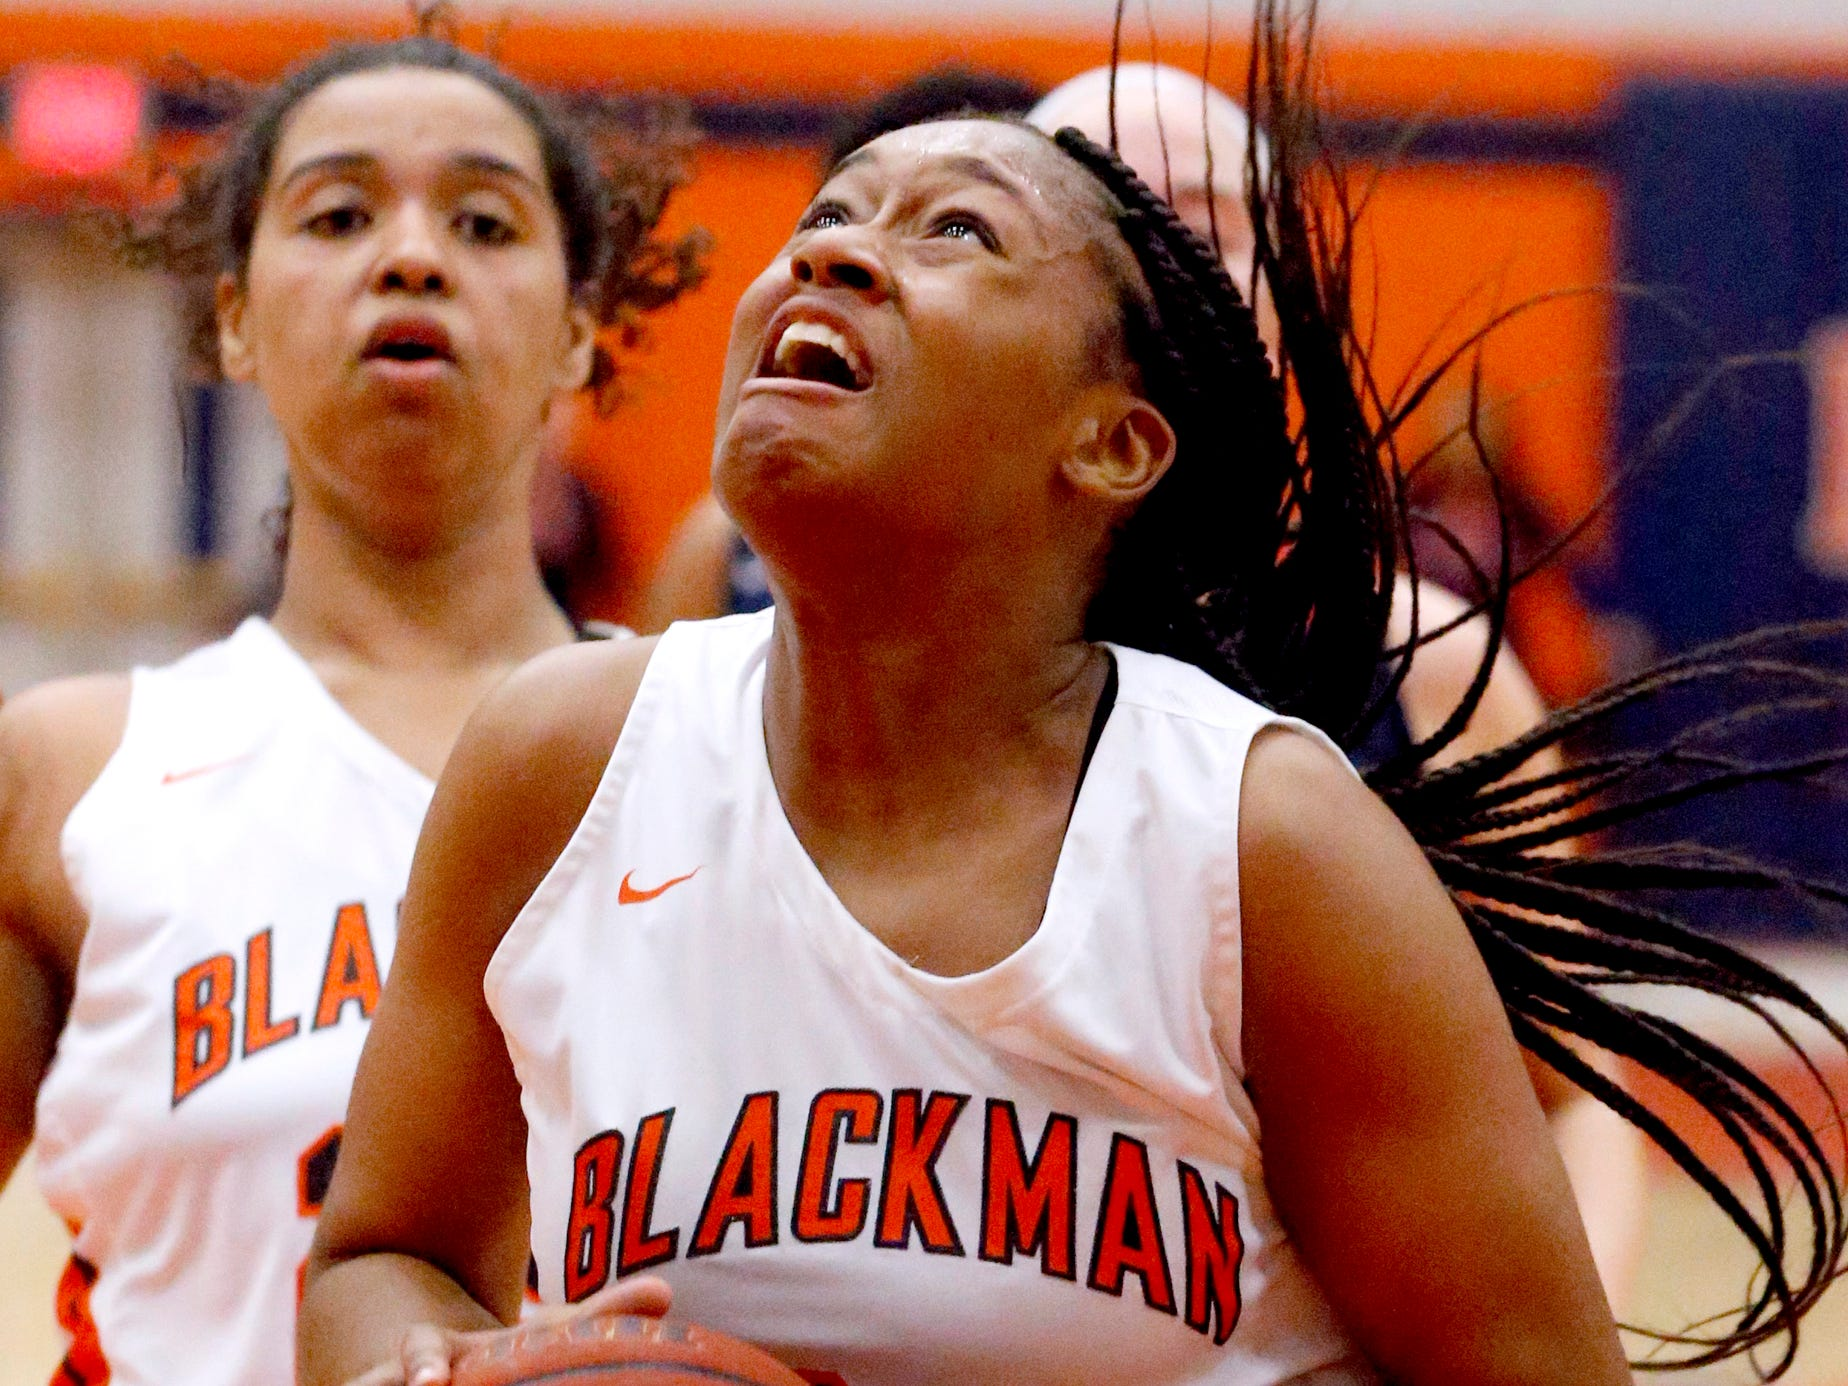 Blackman's Geegee Hollingsworth (34) grabs the rebound and goes up for a shot during the game against Oakland on Friday, Feb. 8, 2019.